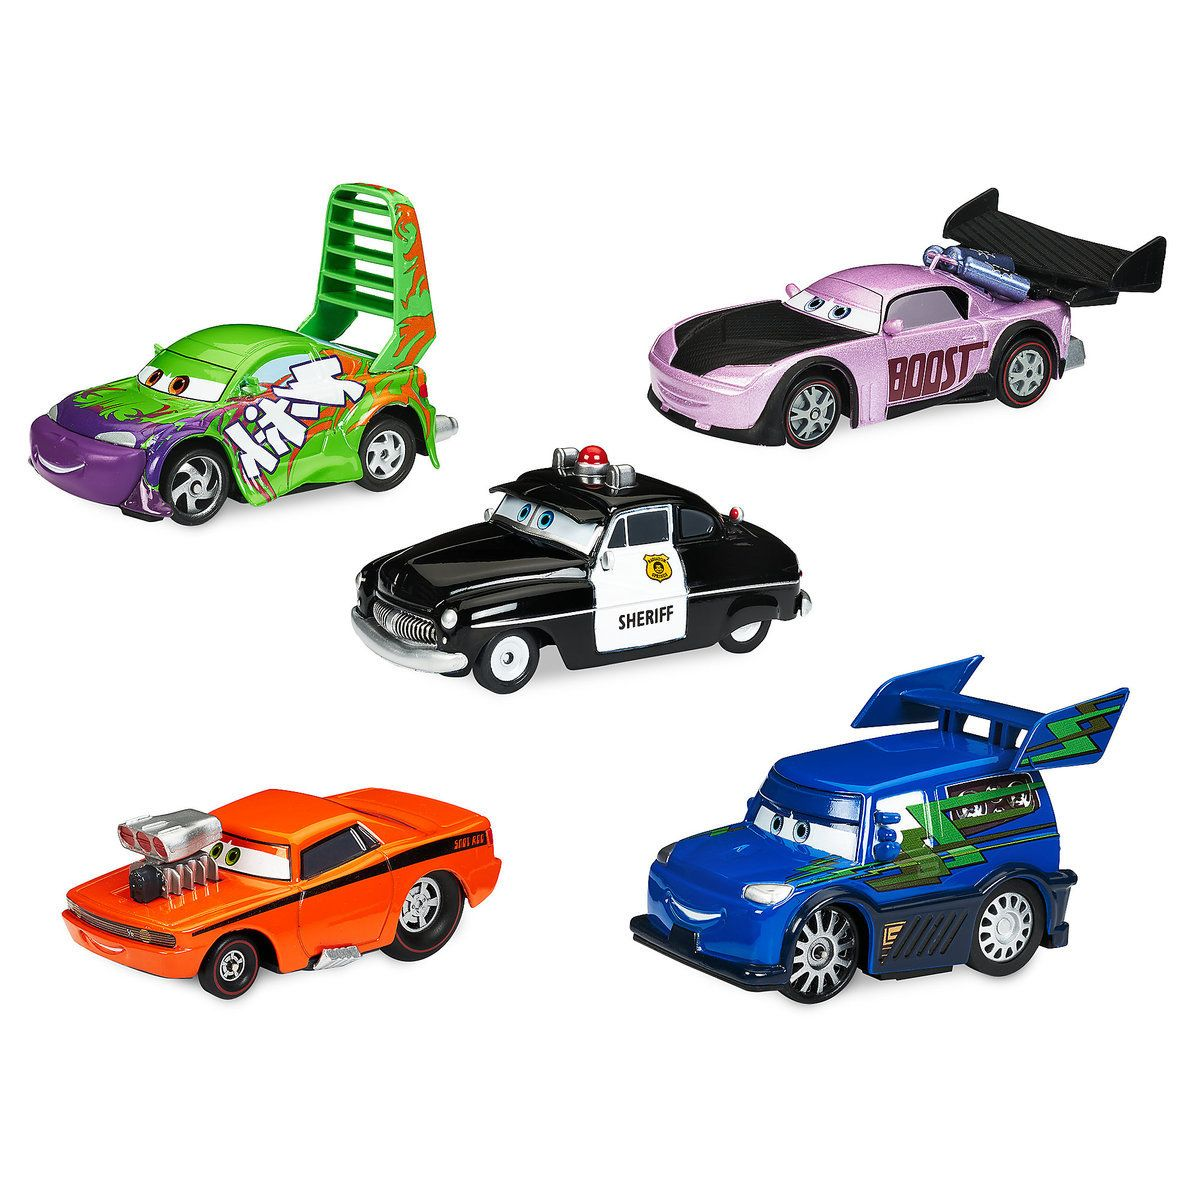 Sheriff Tuner Cars Pull N Race Die Cast Set Cars Tuner